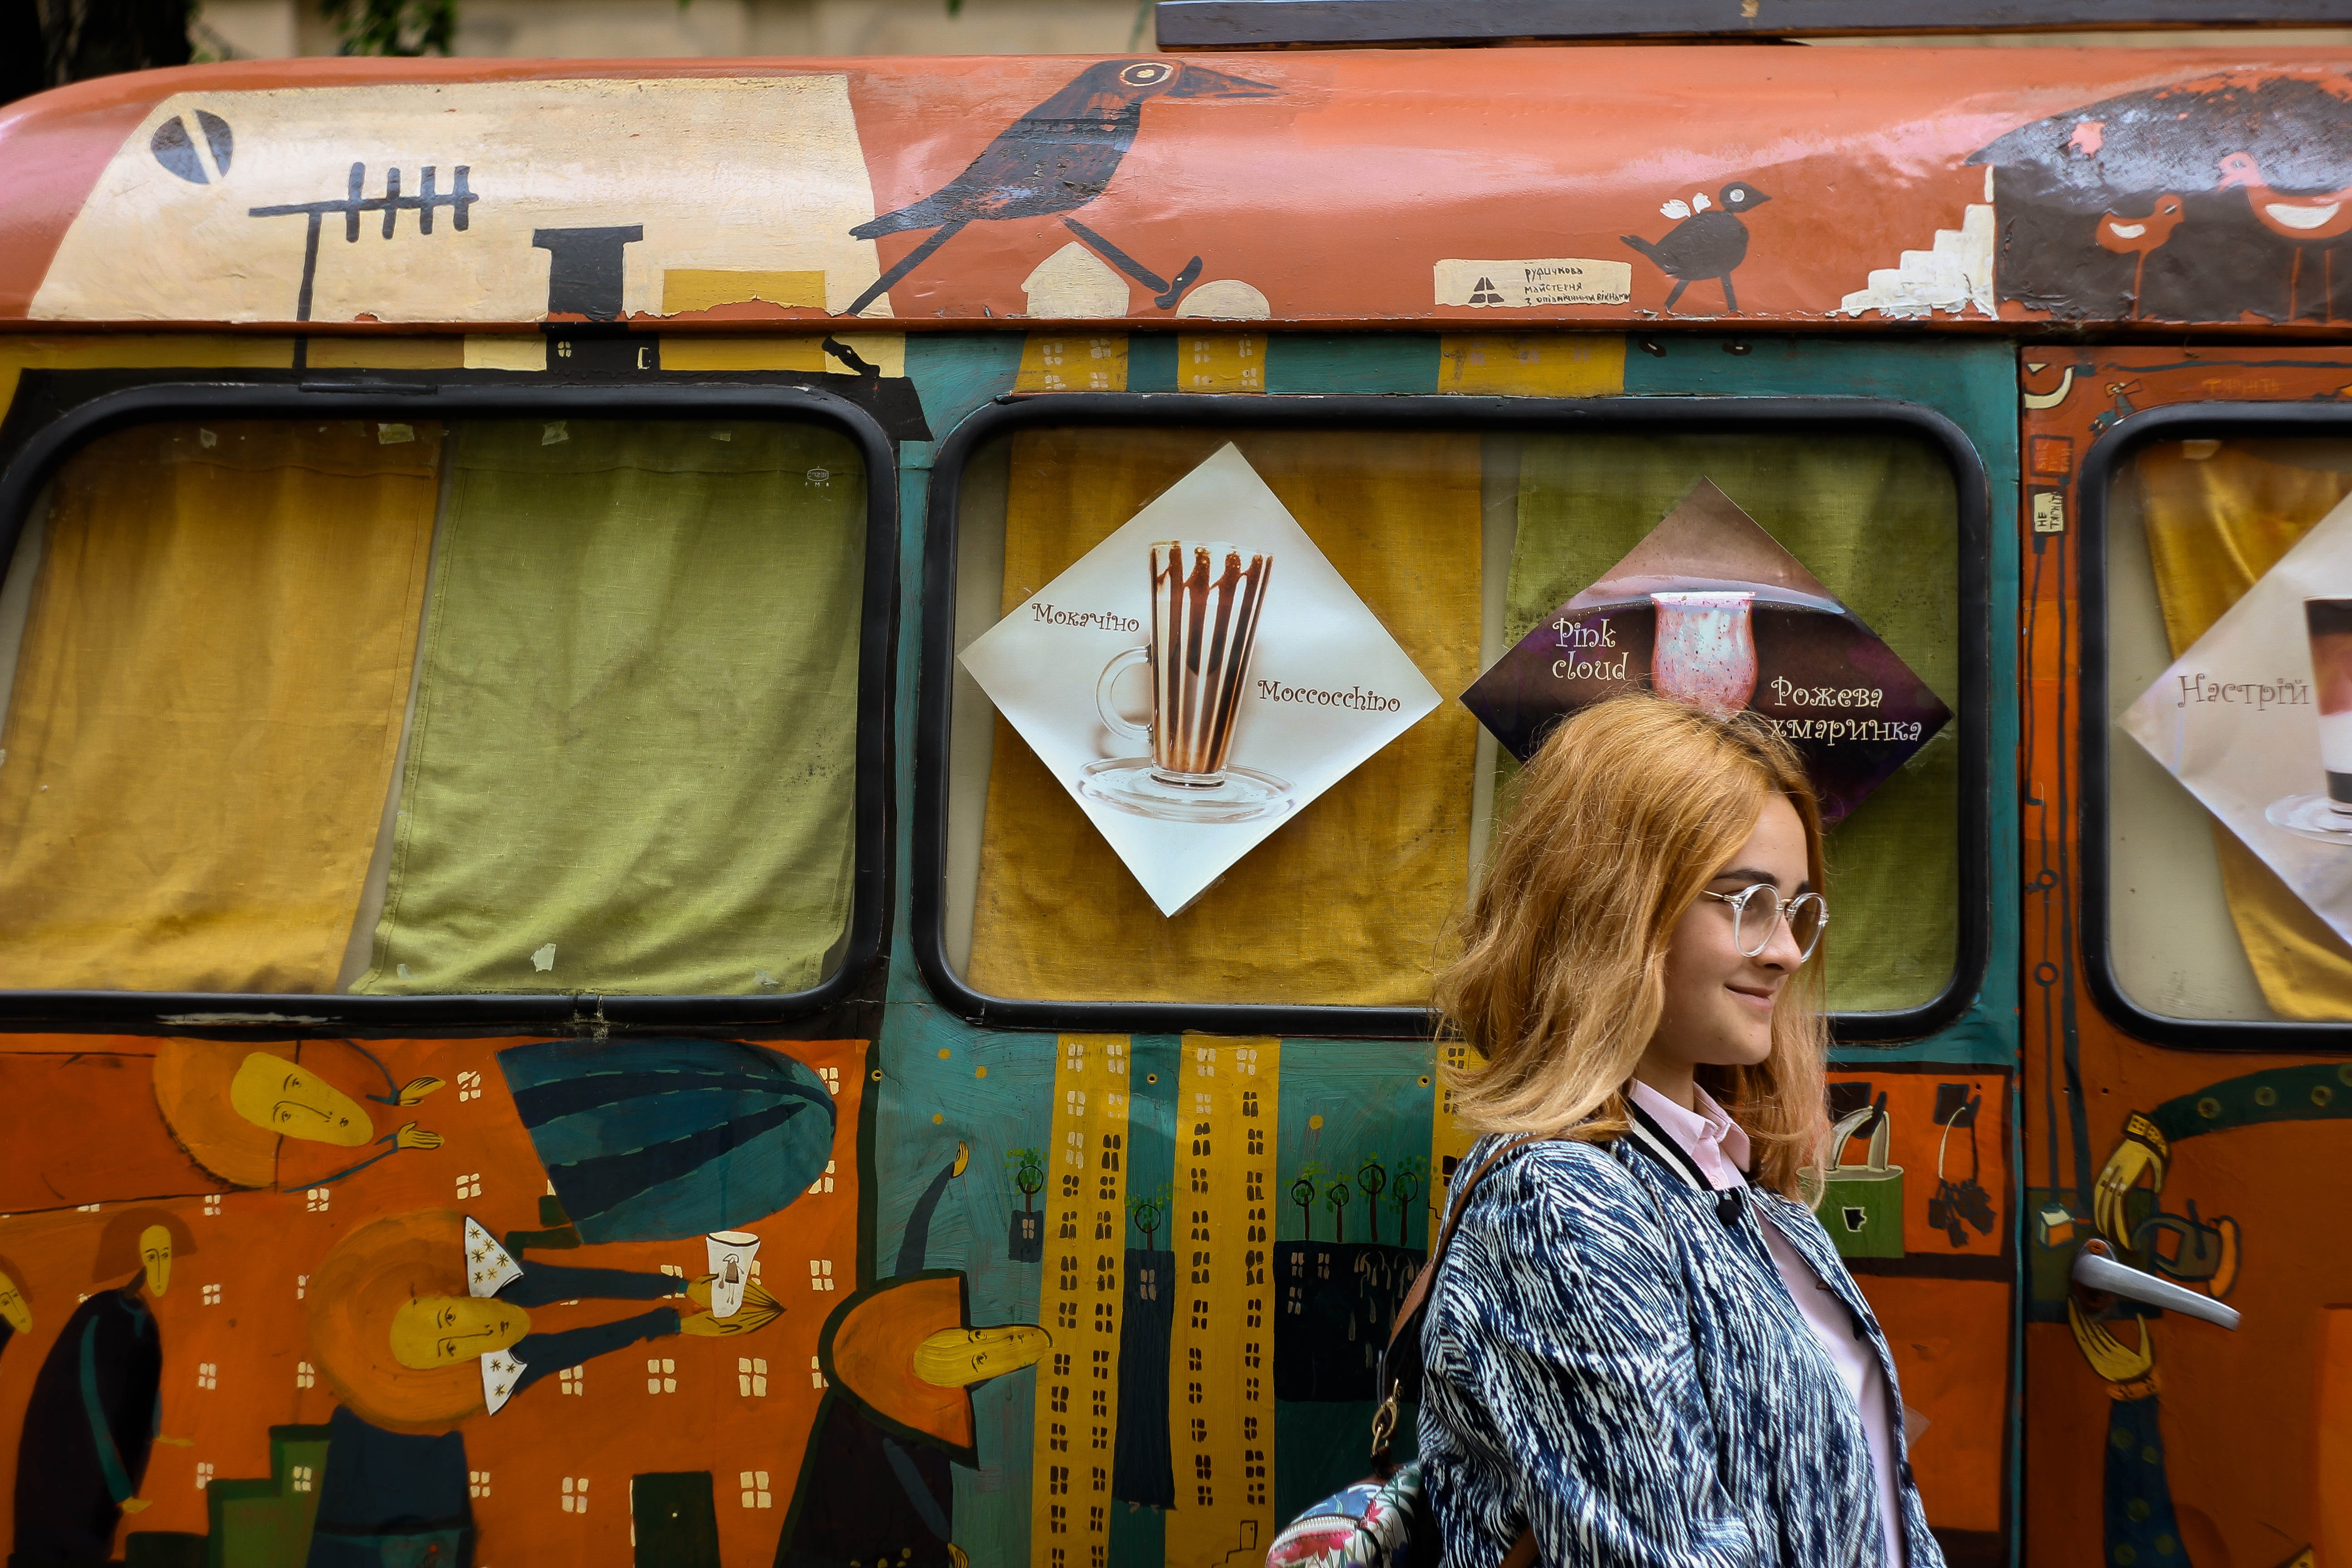 A stylish smiling woman in glasses walks by a bright, intricately decorated bus